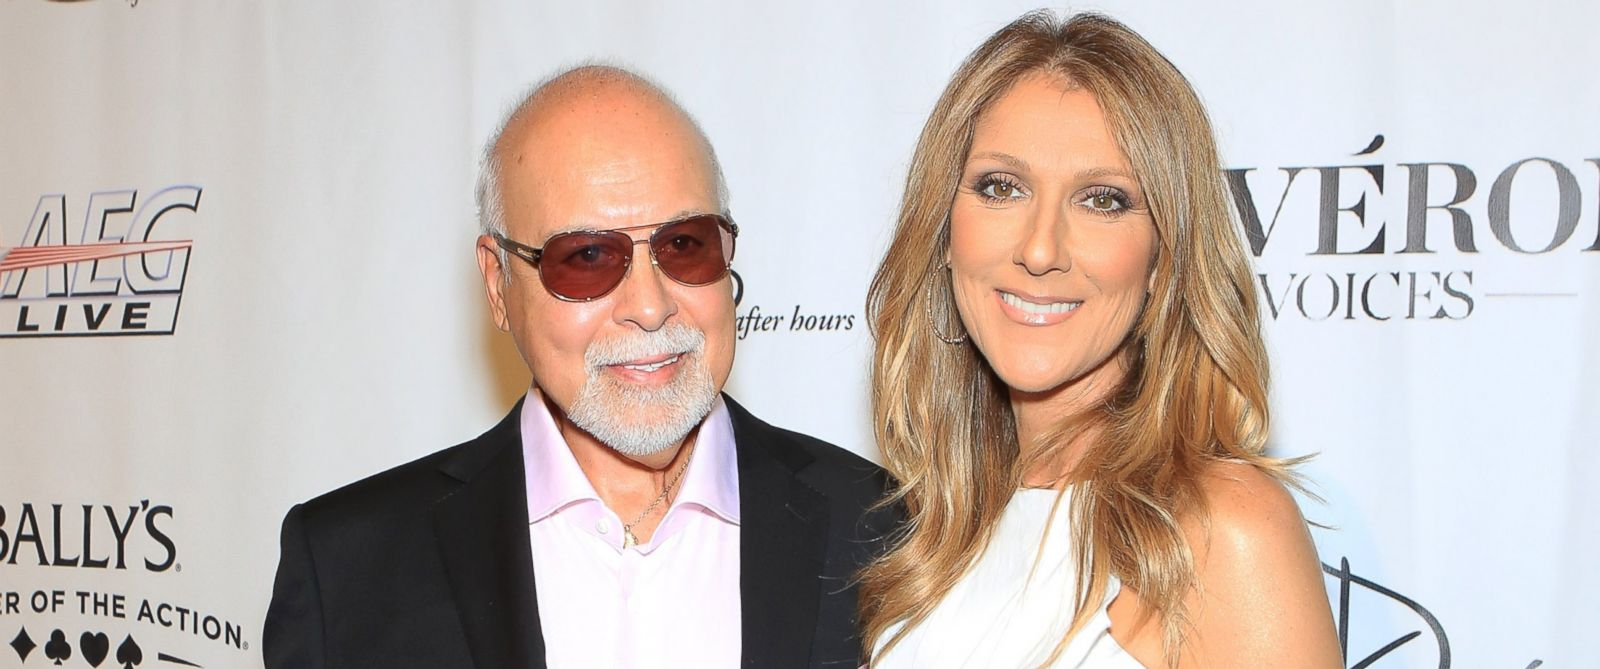 "PHOTO: Rene Angelil, left, and singer Celine Dion arrive at the premiere of the show ""Veronic Voices"" at Ballys Las Vegas, June 28, 2013 in Las Vegas."